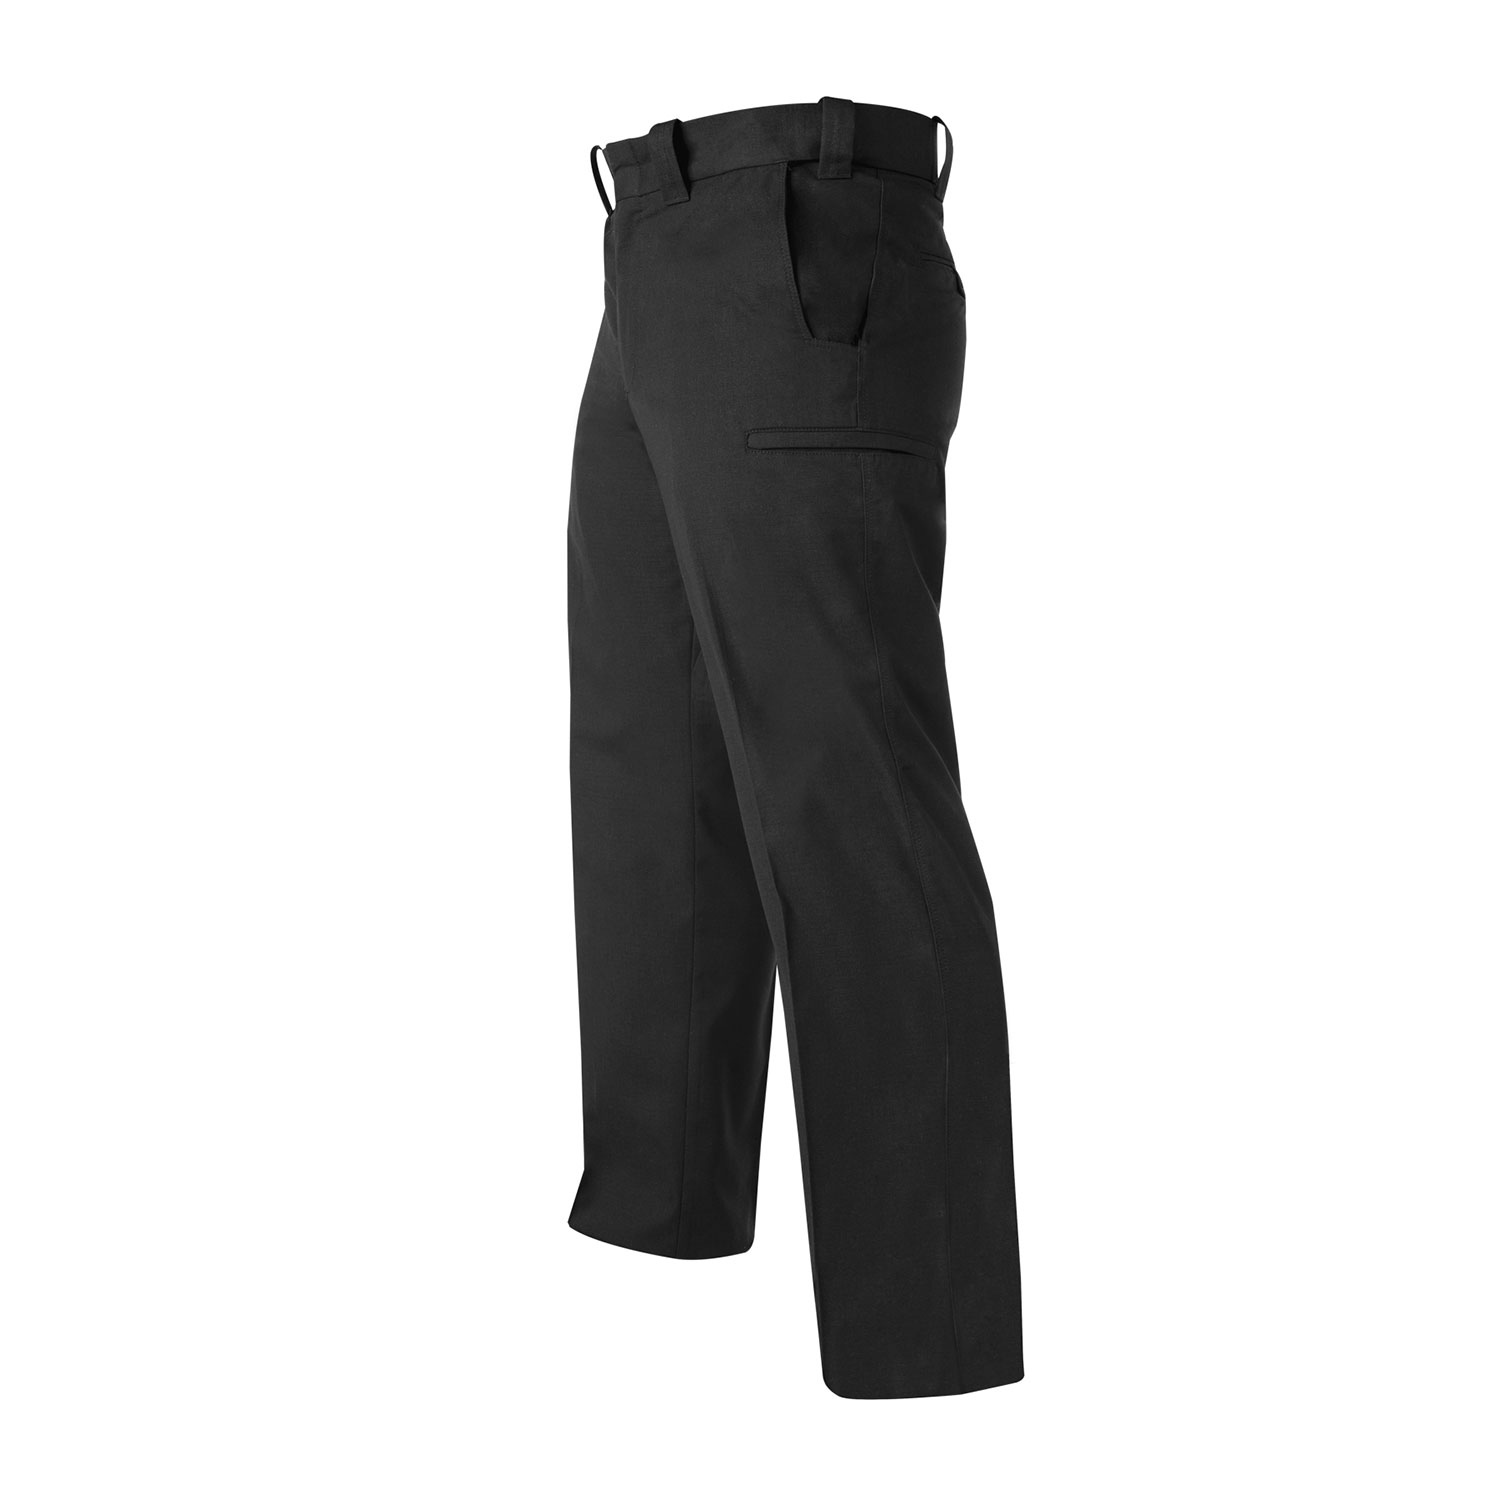 Flying Cross Cross Fx Class A Style Uniform Pants by Flying